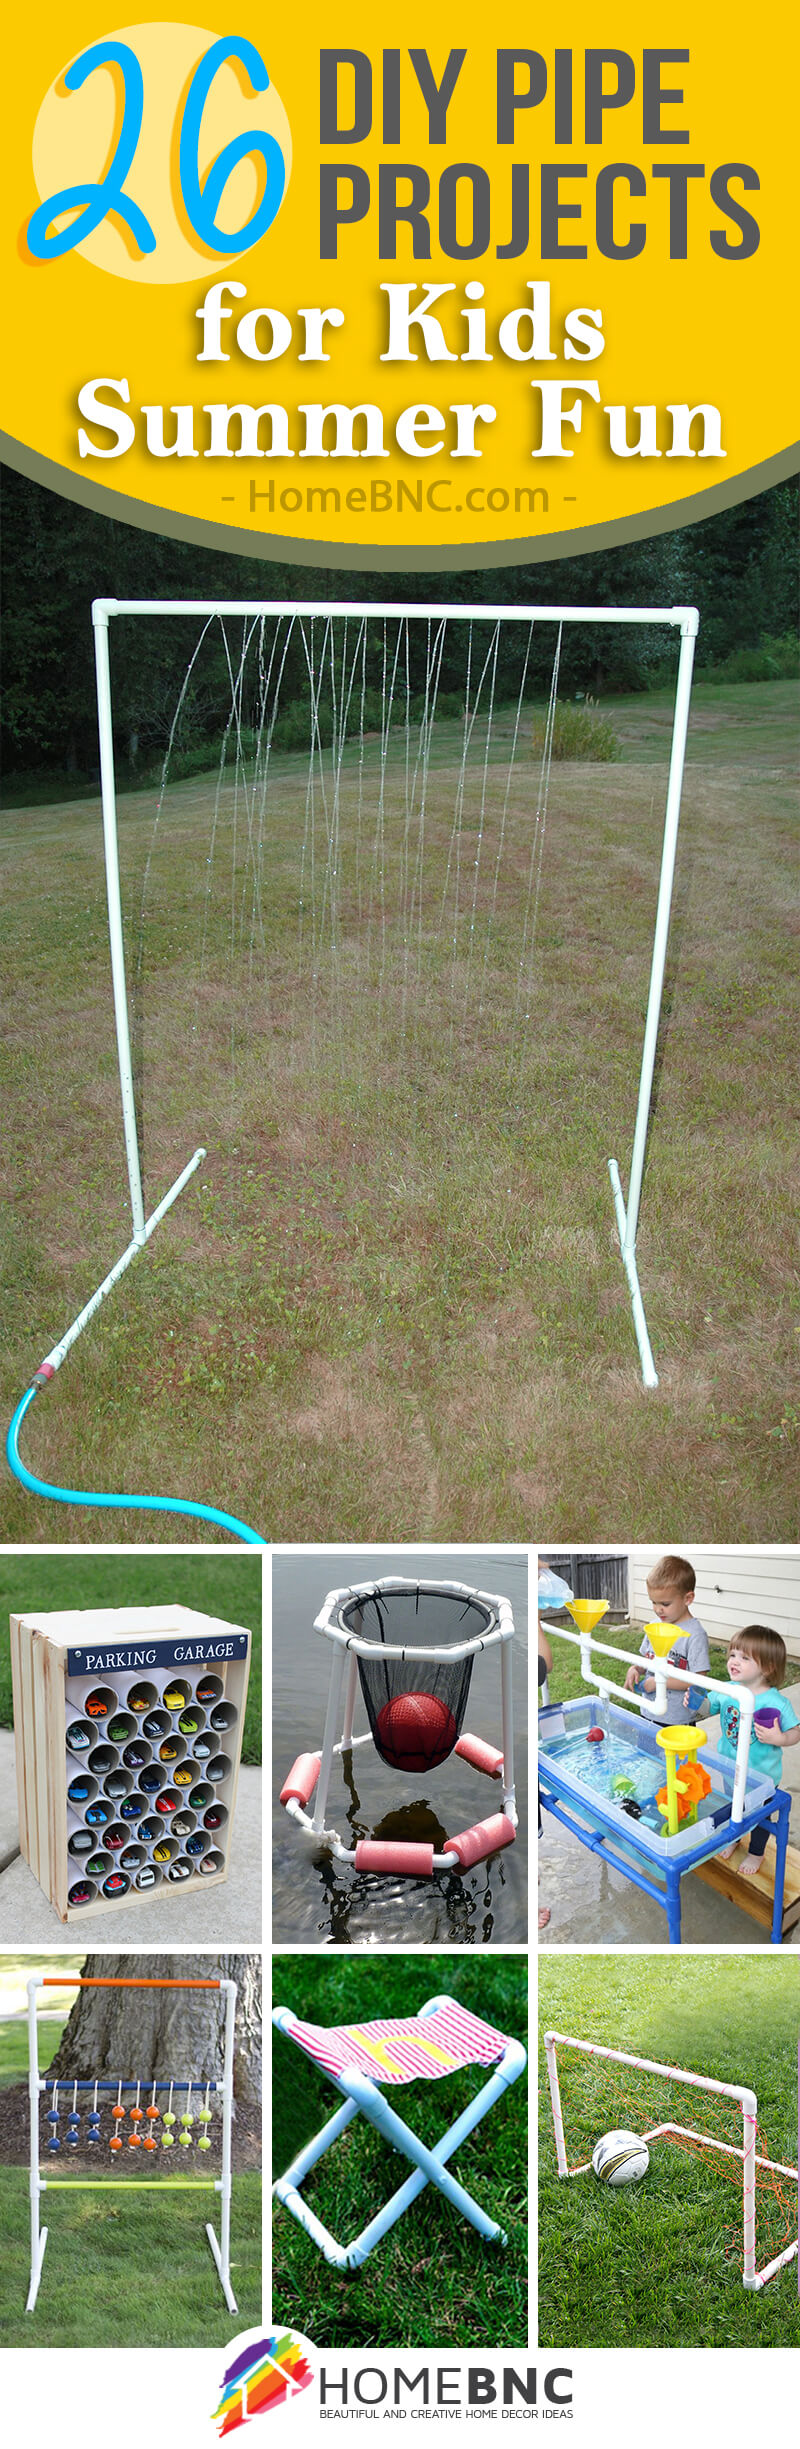 DIY Pipe Projects for Kids Ideas